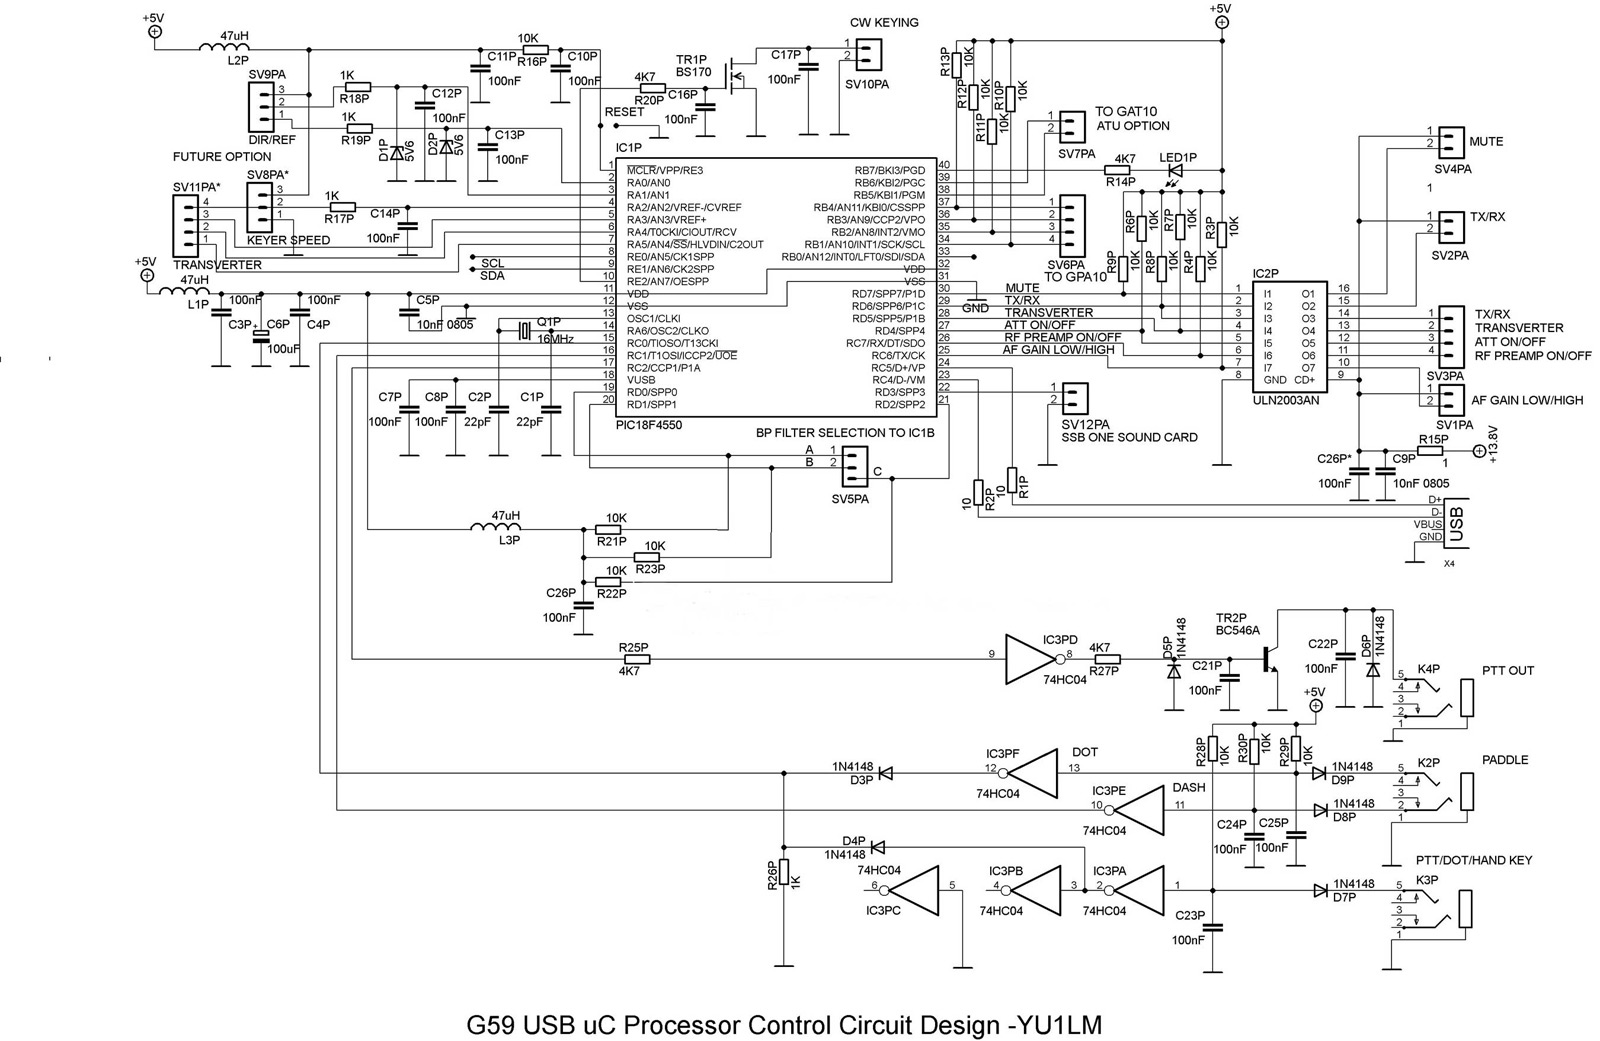 6 pin dpdt switch wiring diagram 2001 jeep transceiver circuit page 2 : rf circuits :: next.gr